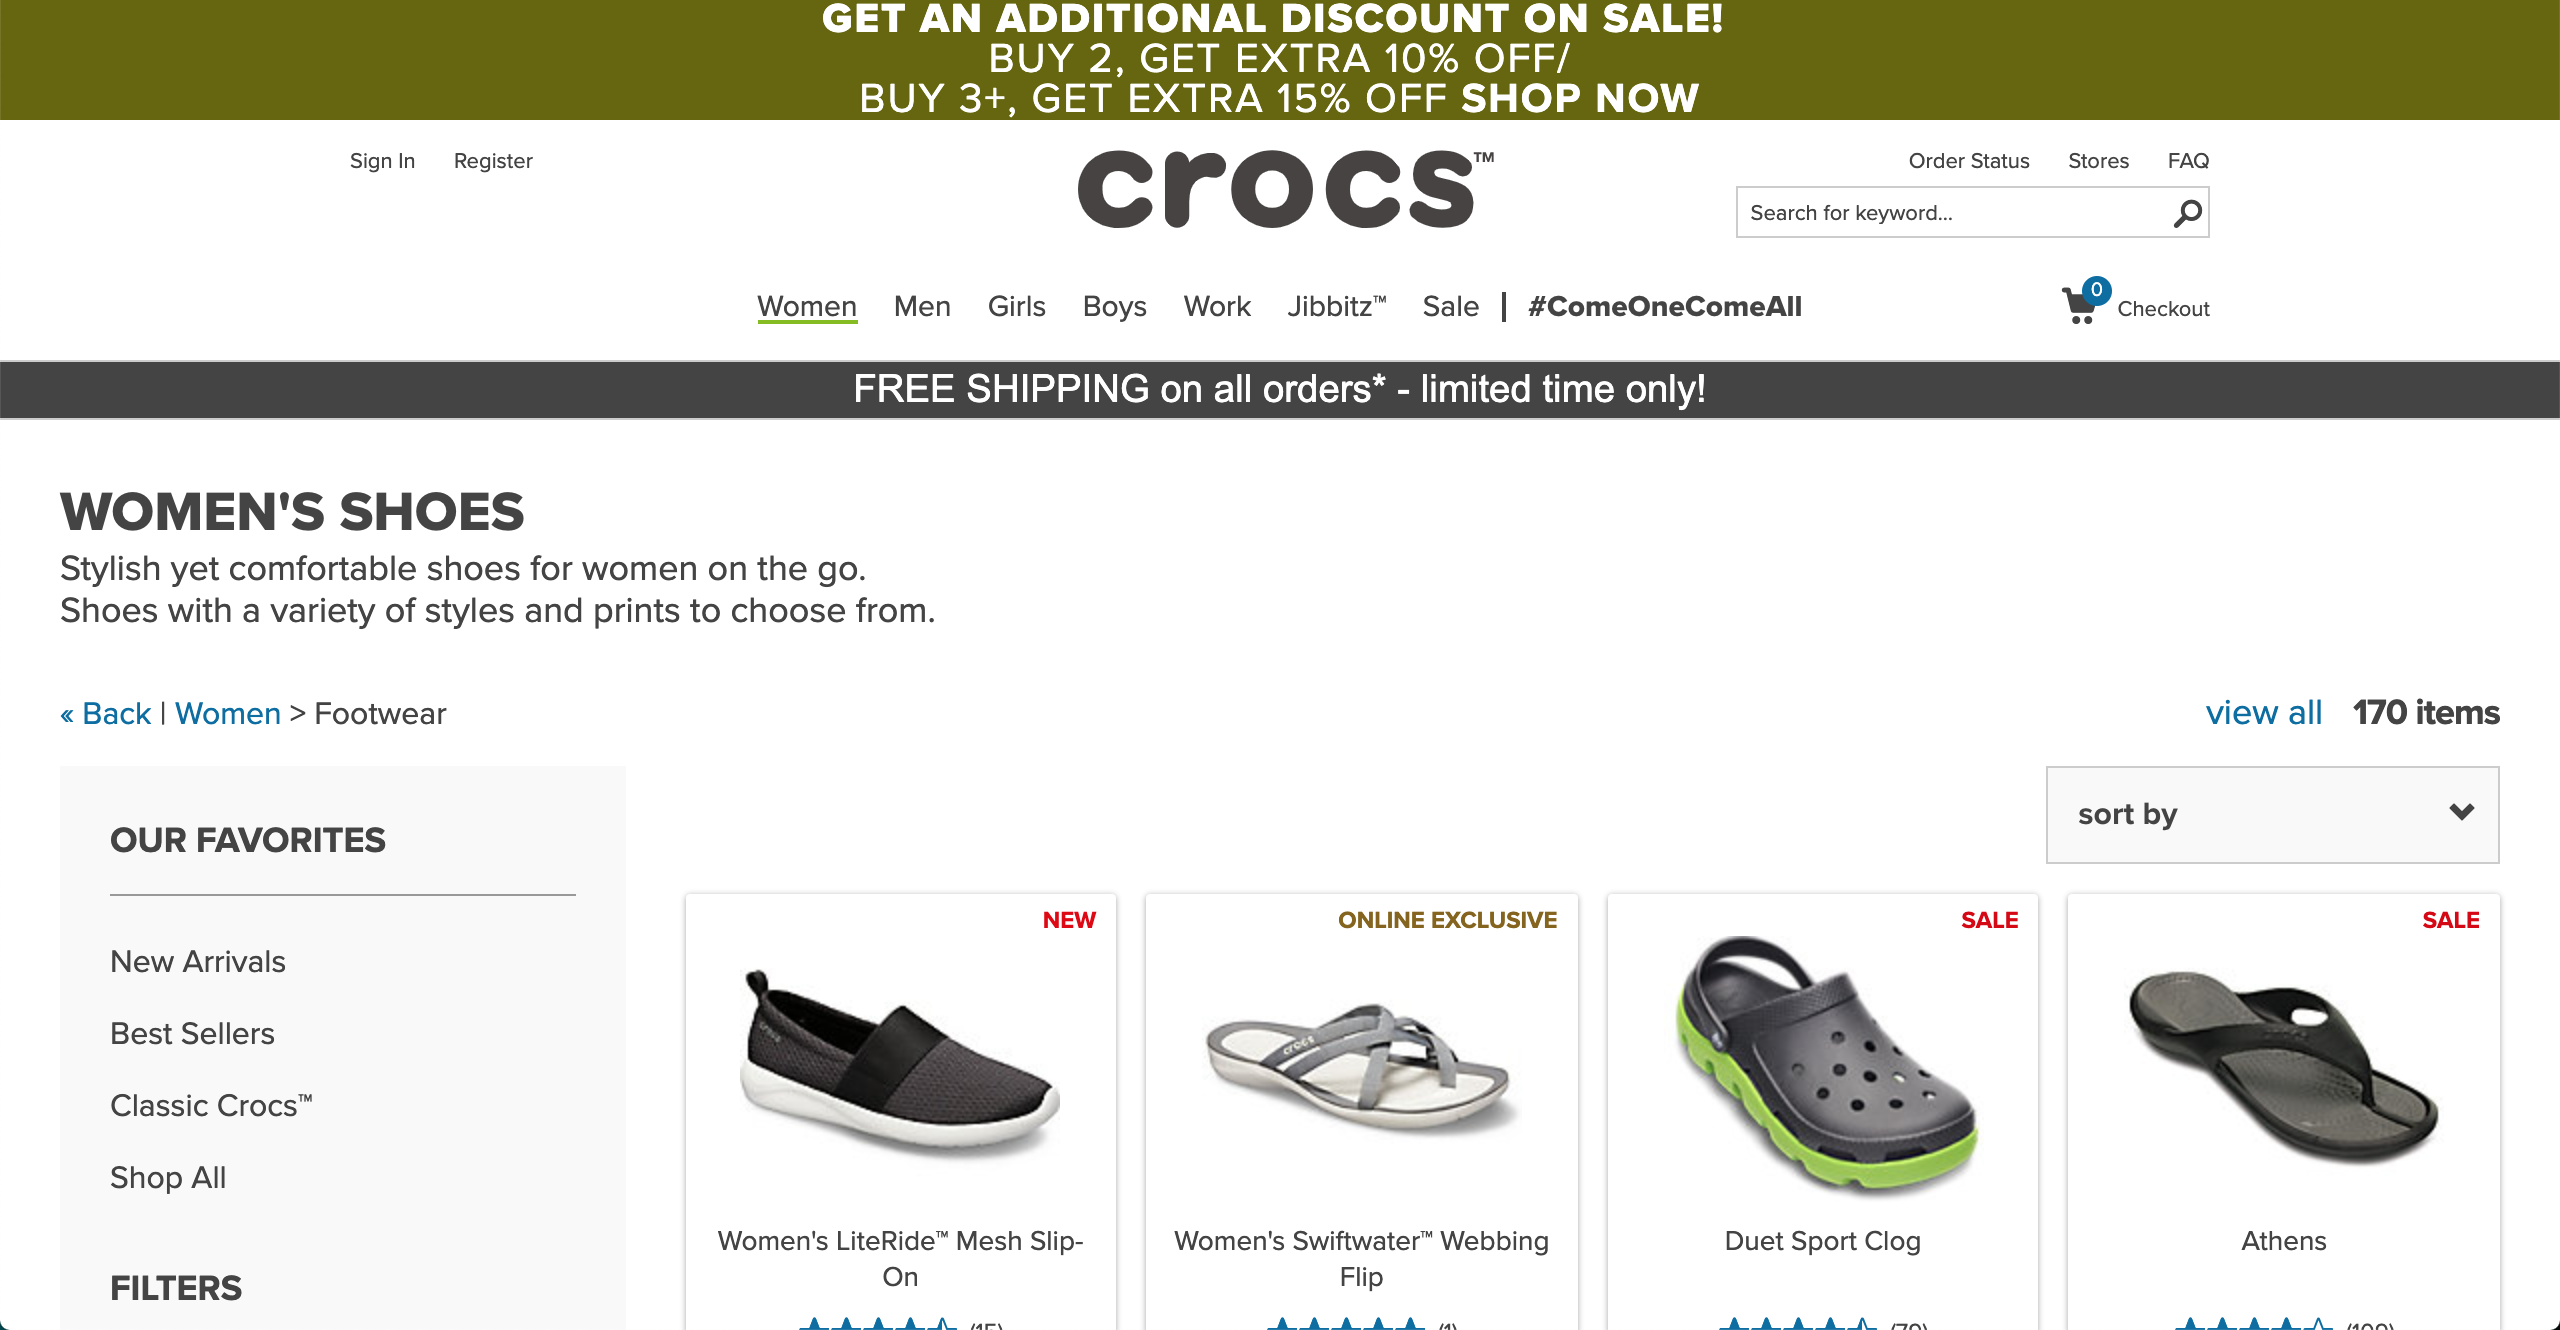 Crocs women's products page